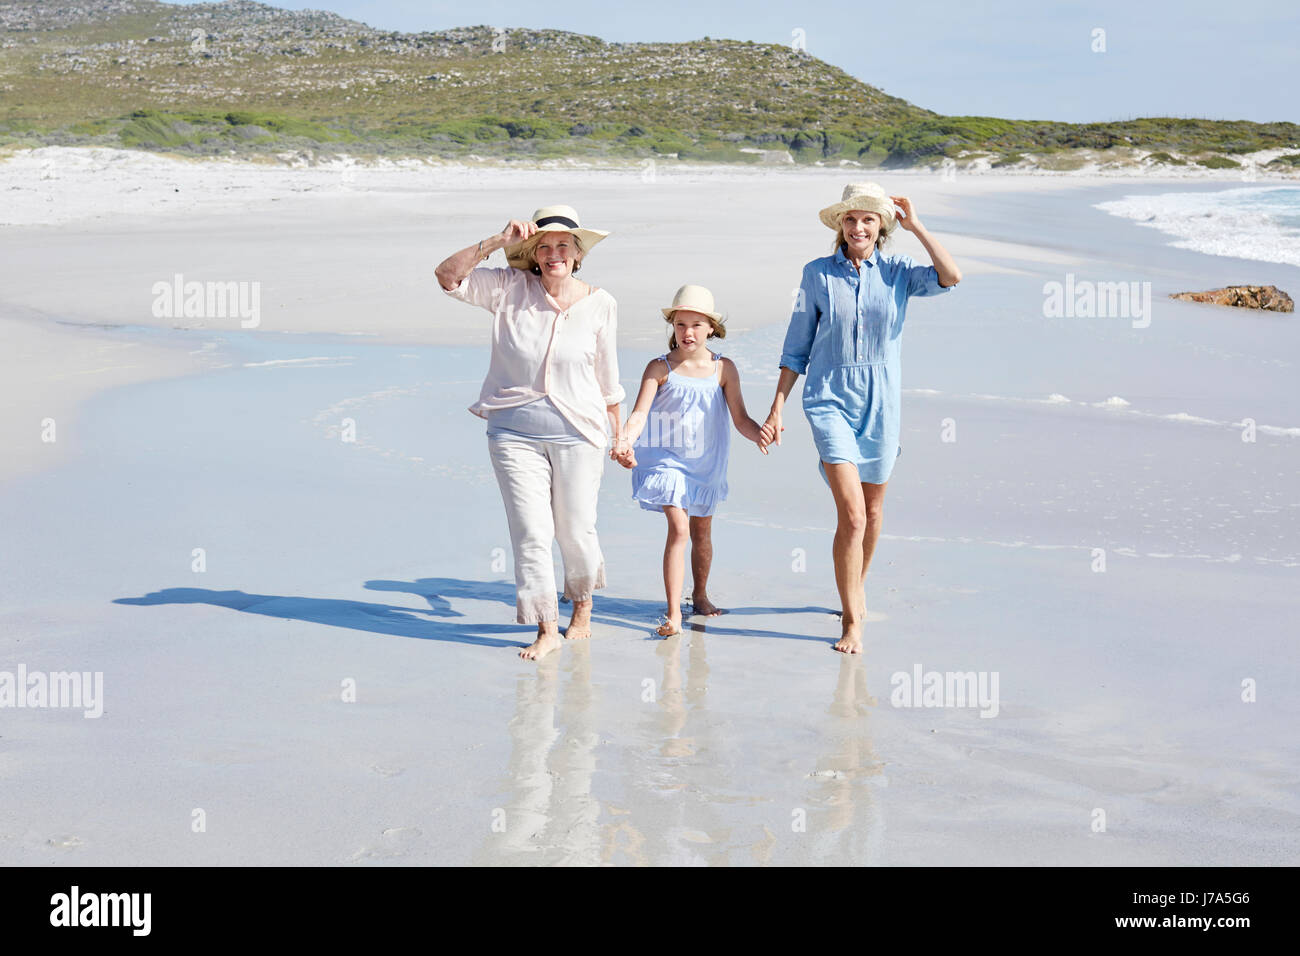 Mother, daughter and grandmother walking by the sea - Stock Image